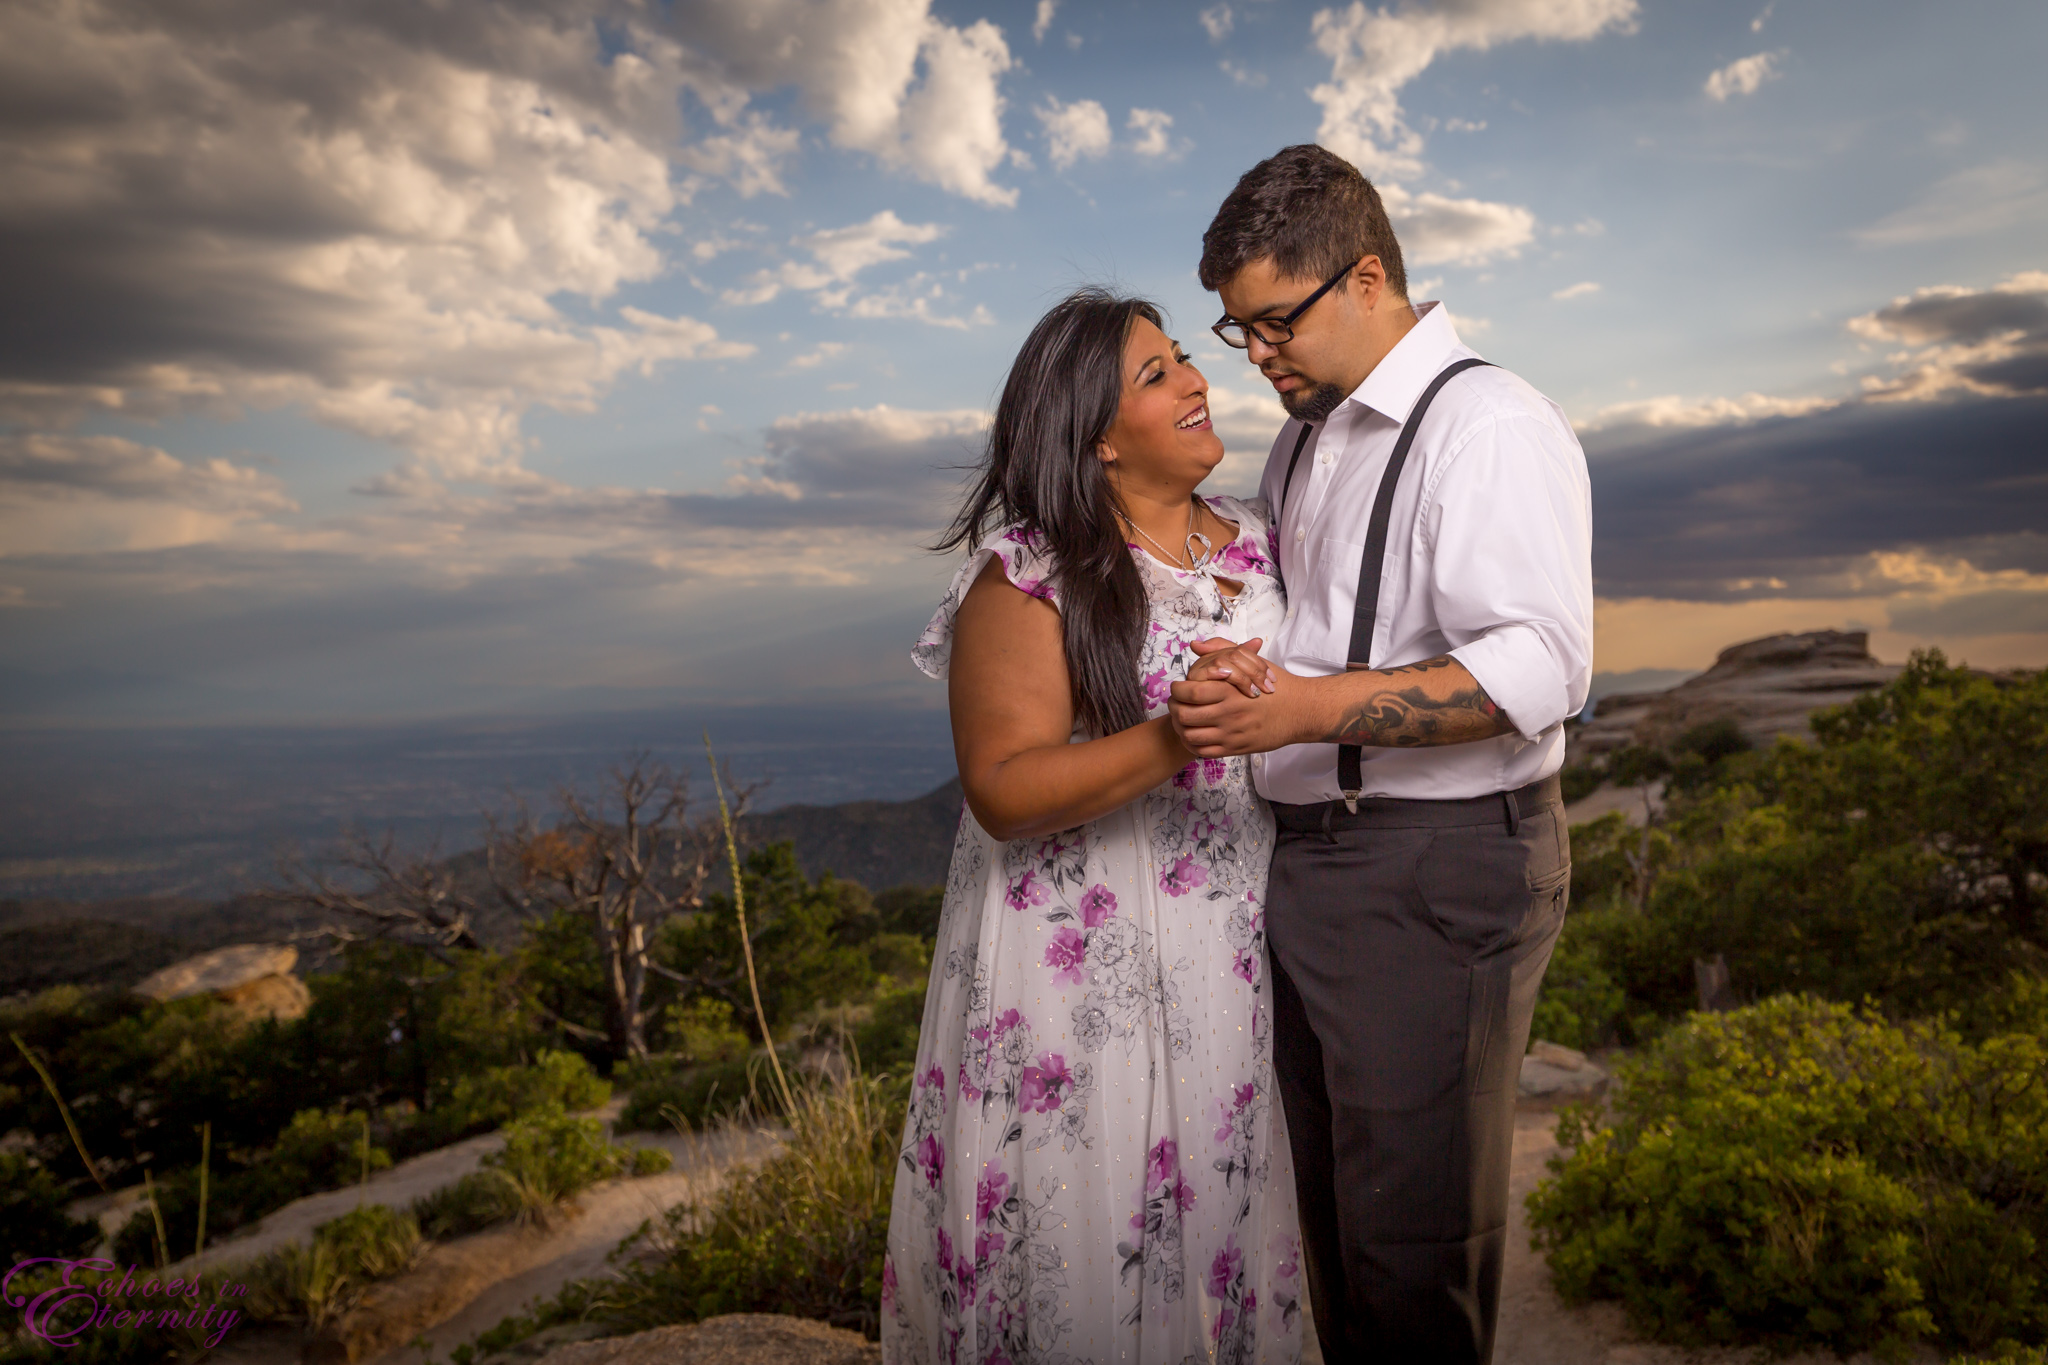 Zach and EJ Tucson Wedding and Engagement Photographer Mt. Lemmon Windy Point 16.jpg